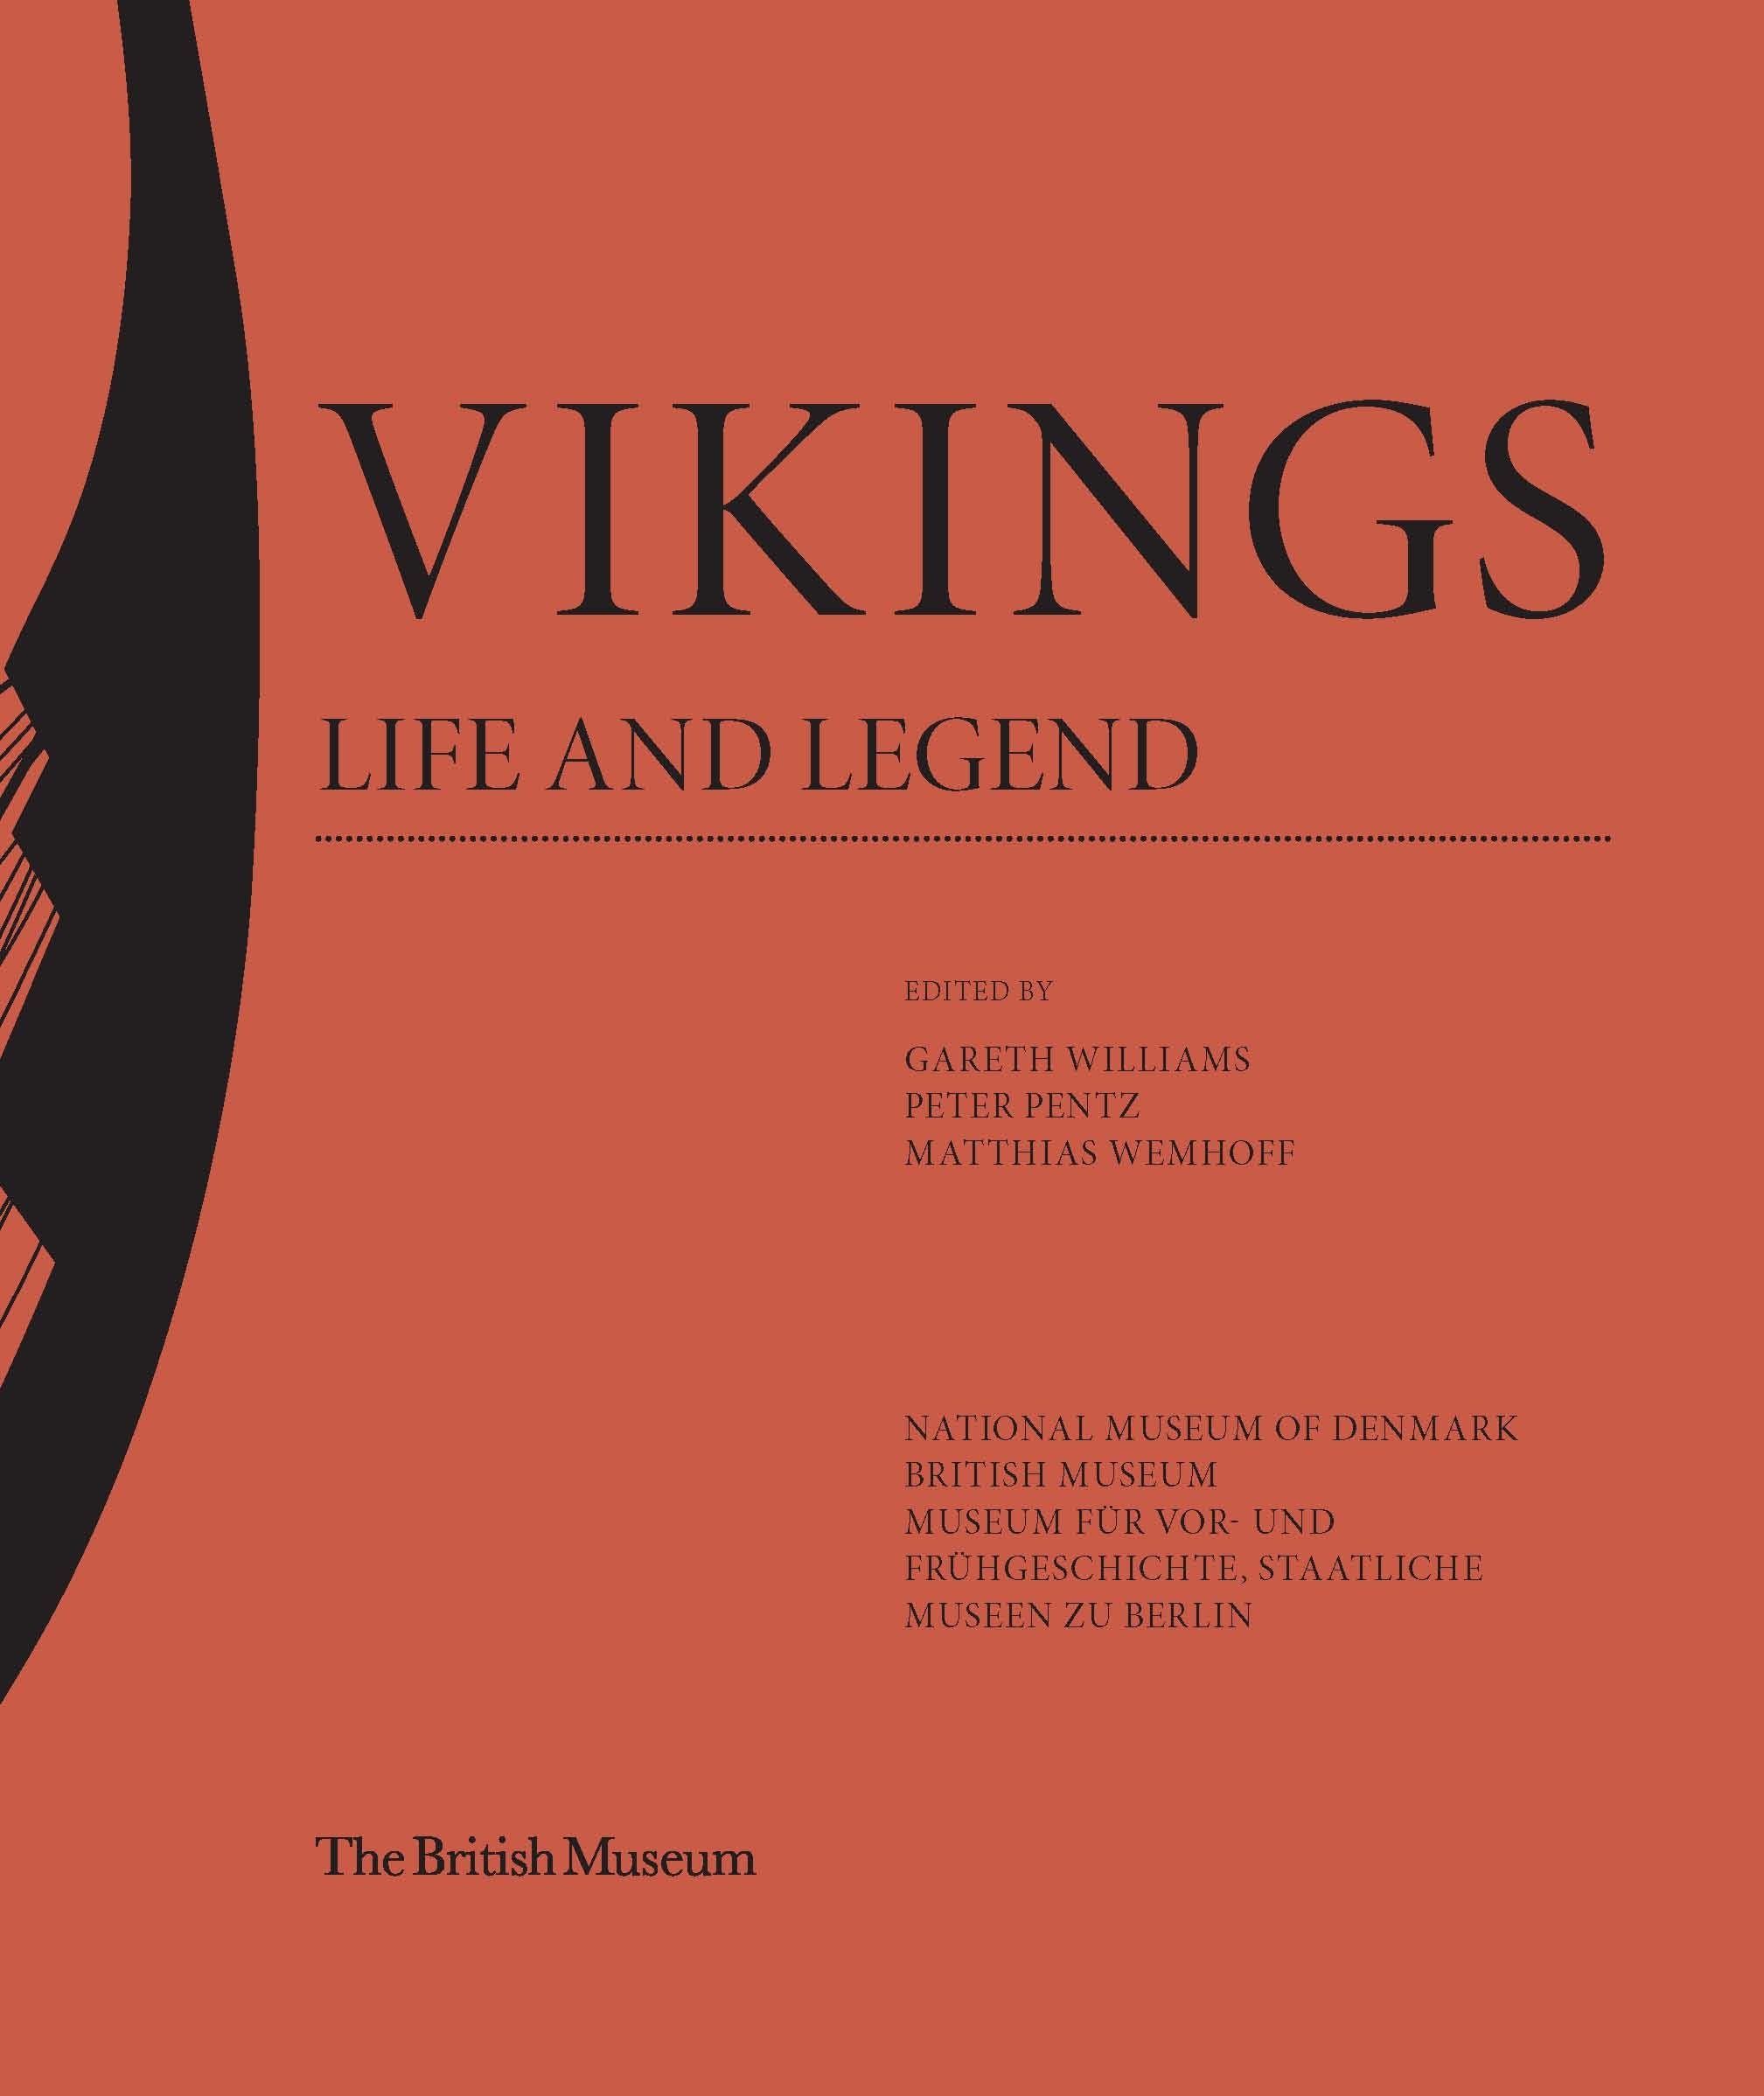 Vikings: Life and Legend: Amazon.es: Gareth Williams, Peter Pentz: Libros en idiomas extranjeros